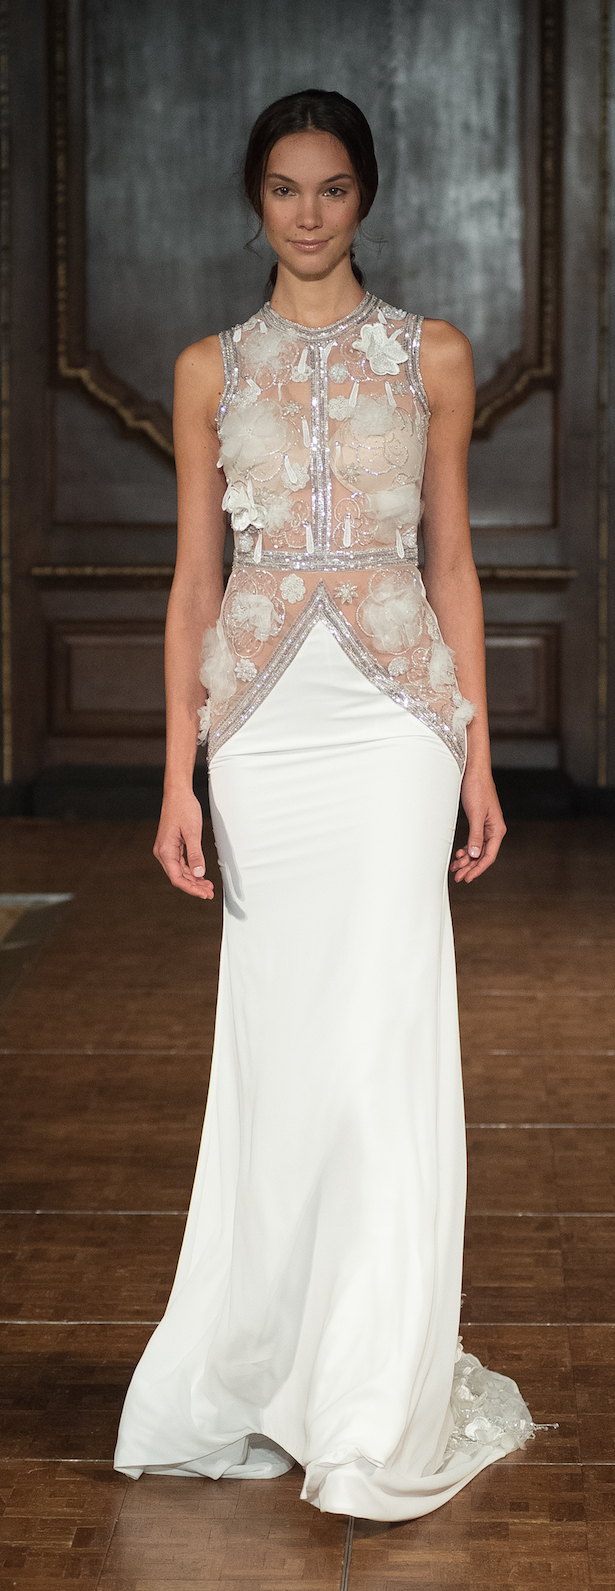 Wedding Dress - Idan Cohen 2017 Bridal Collection 4